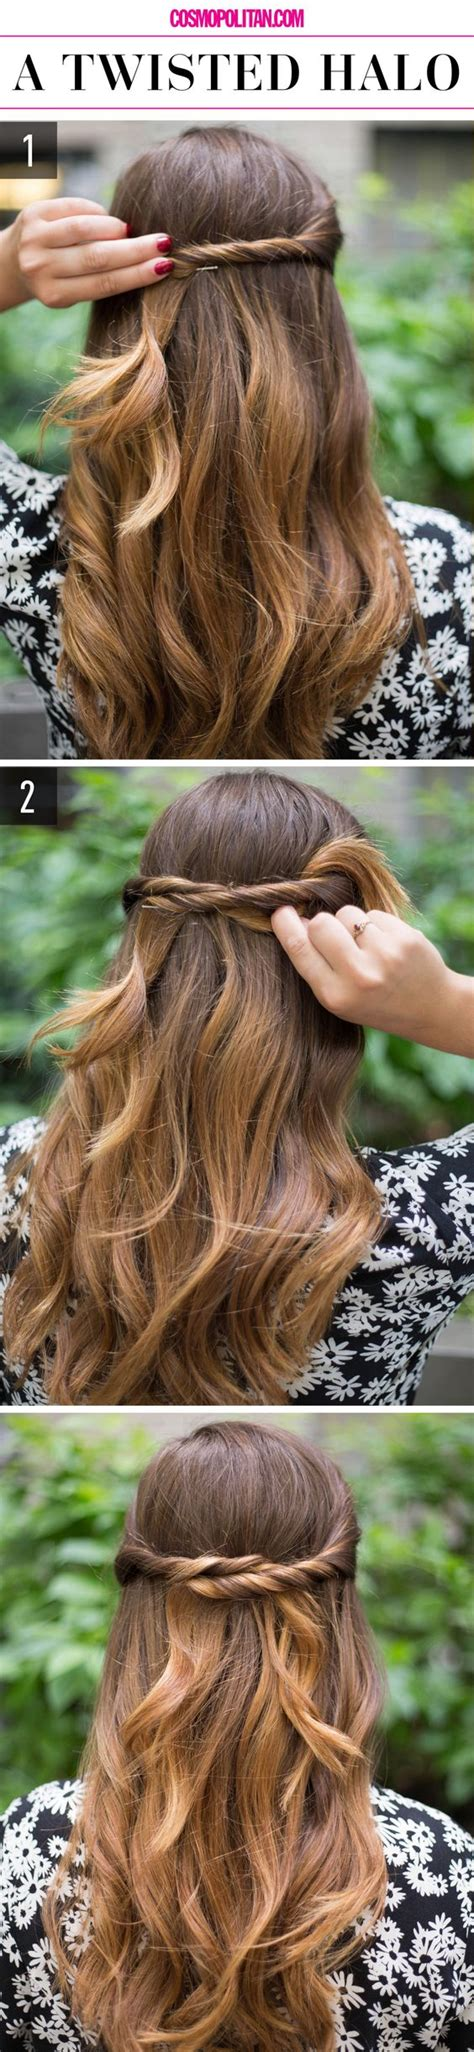 Hairstyles For School 2017 by 12 And Easy Hairstyles For School 2017 Page 3 Of 11